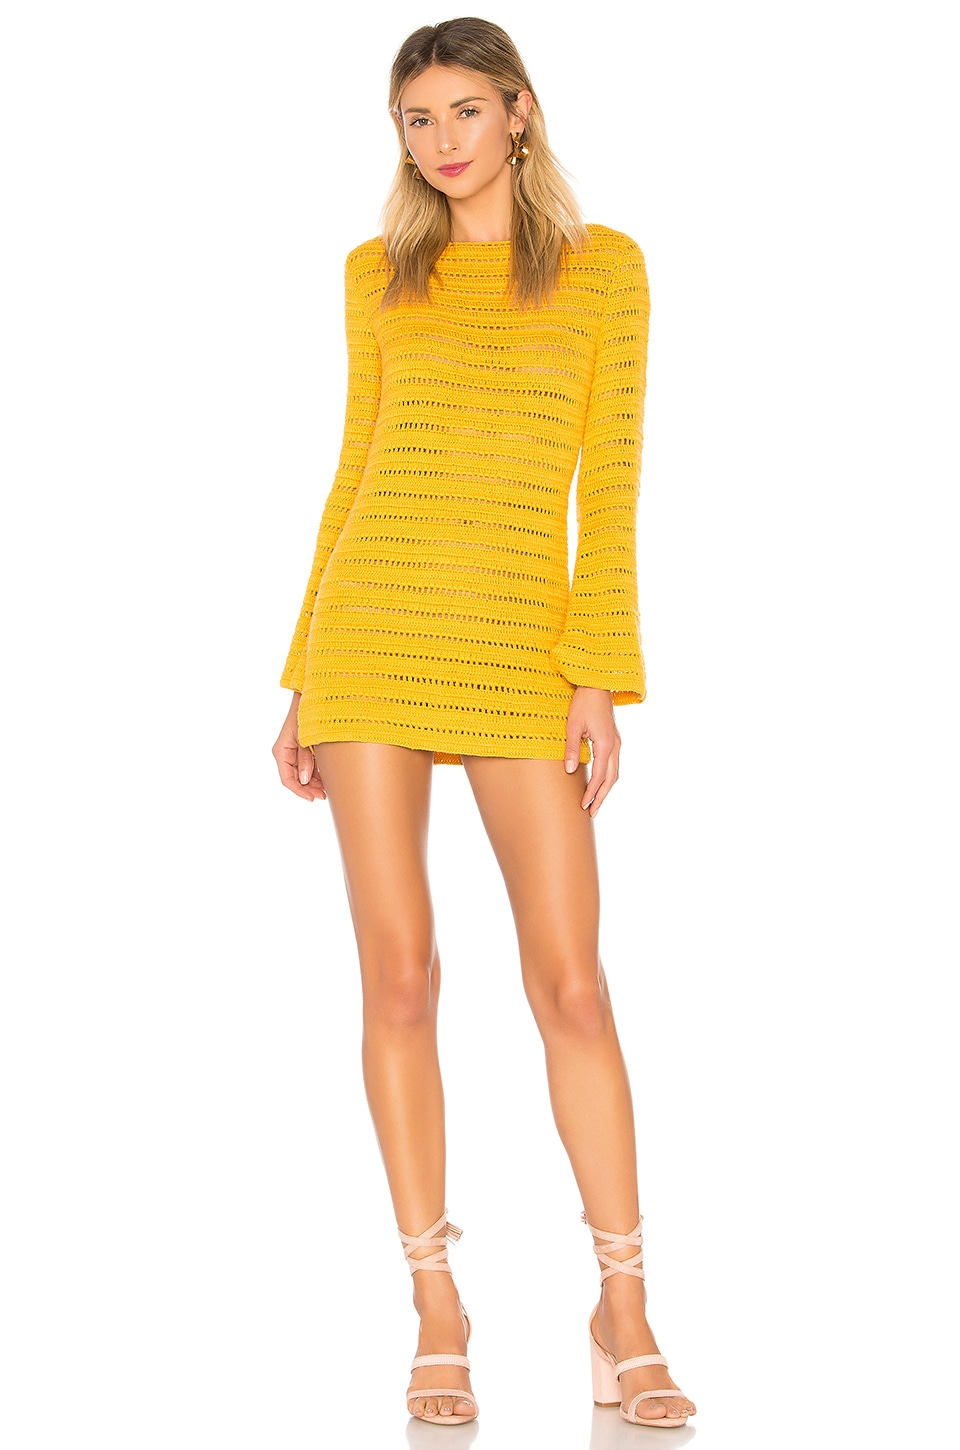 Lovers + Friends Amelia Dress in Canary Yellow